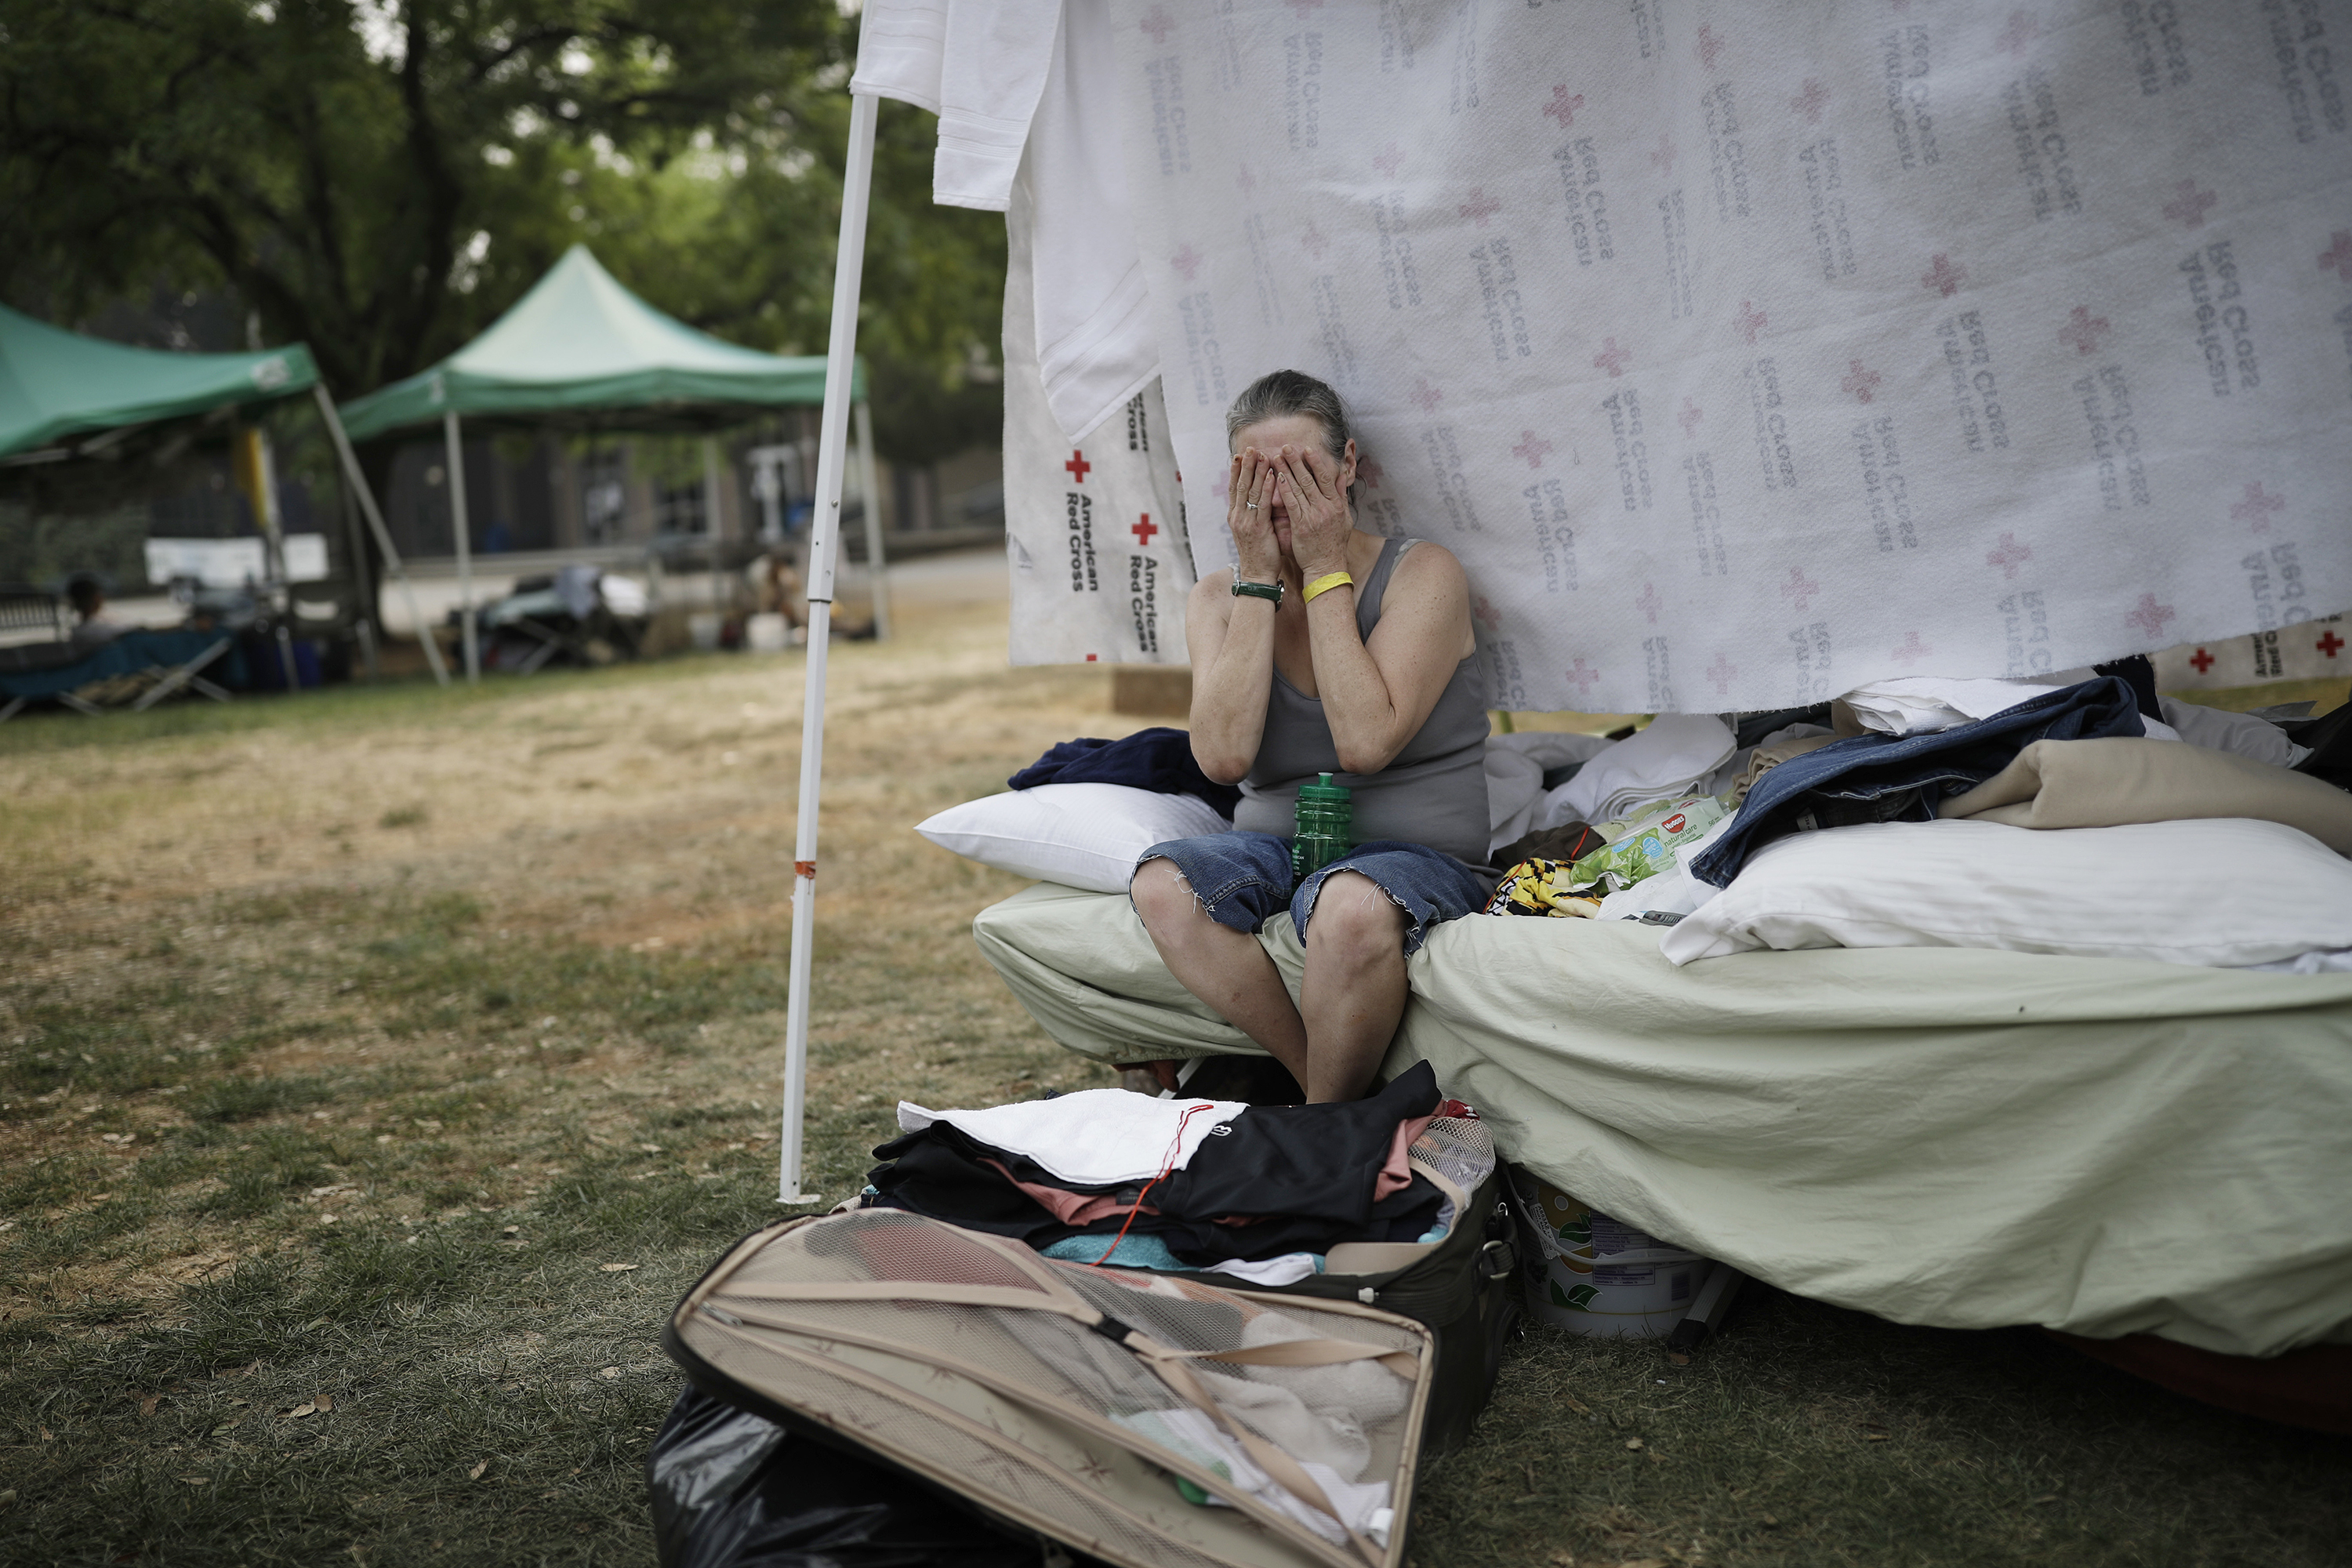 "<div class=""meta image-caption""><div class=""origin-logo origin-image none""><span>none</span></div><span class=""caption-text"">Starla Davis cries as she packs a suitcase in her makeshift tent at an evacuation center Aug. 9, 2018, in Redding, Calif. The evacuation center closes on Aug. 10. (John Locher/AP Photo)</span></div>"